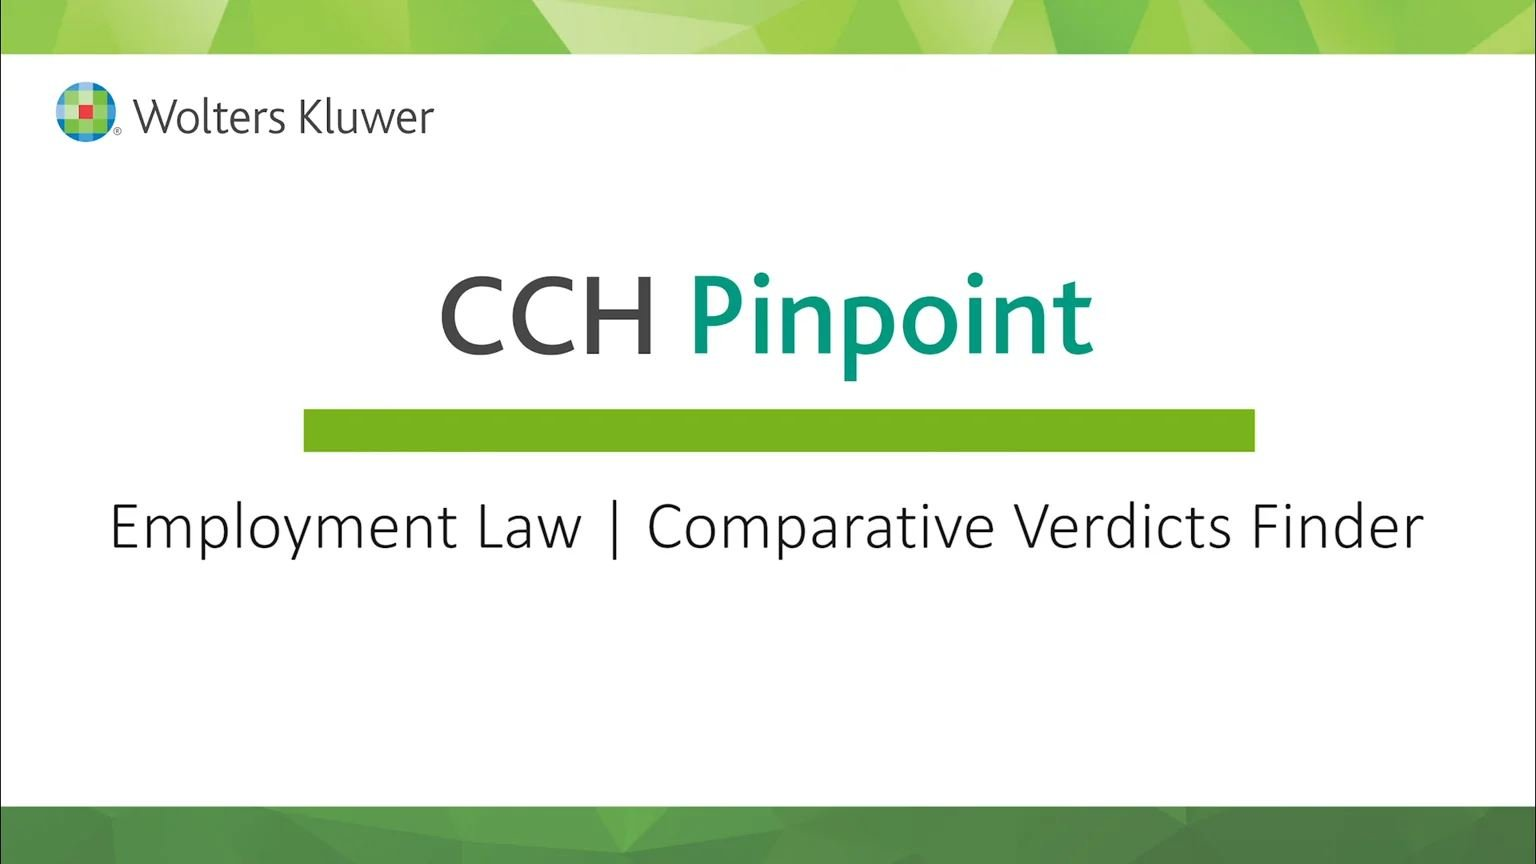 Employment Law Comparative Verdicts Finder